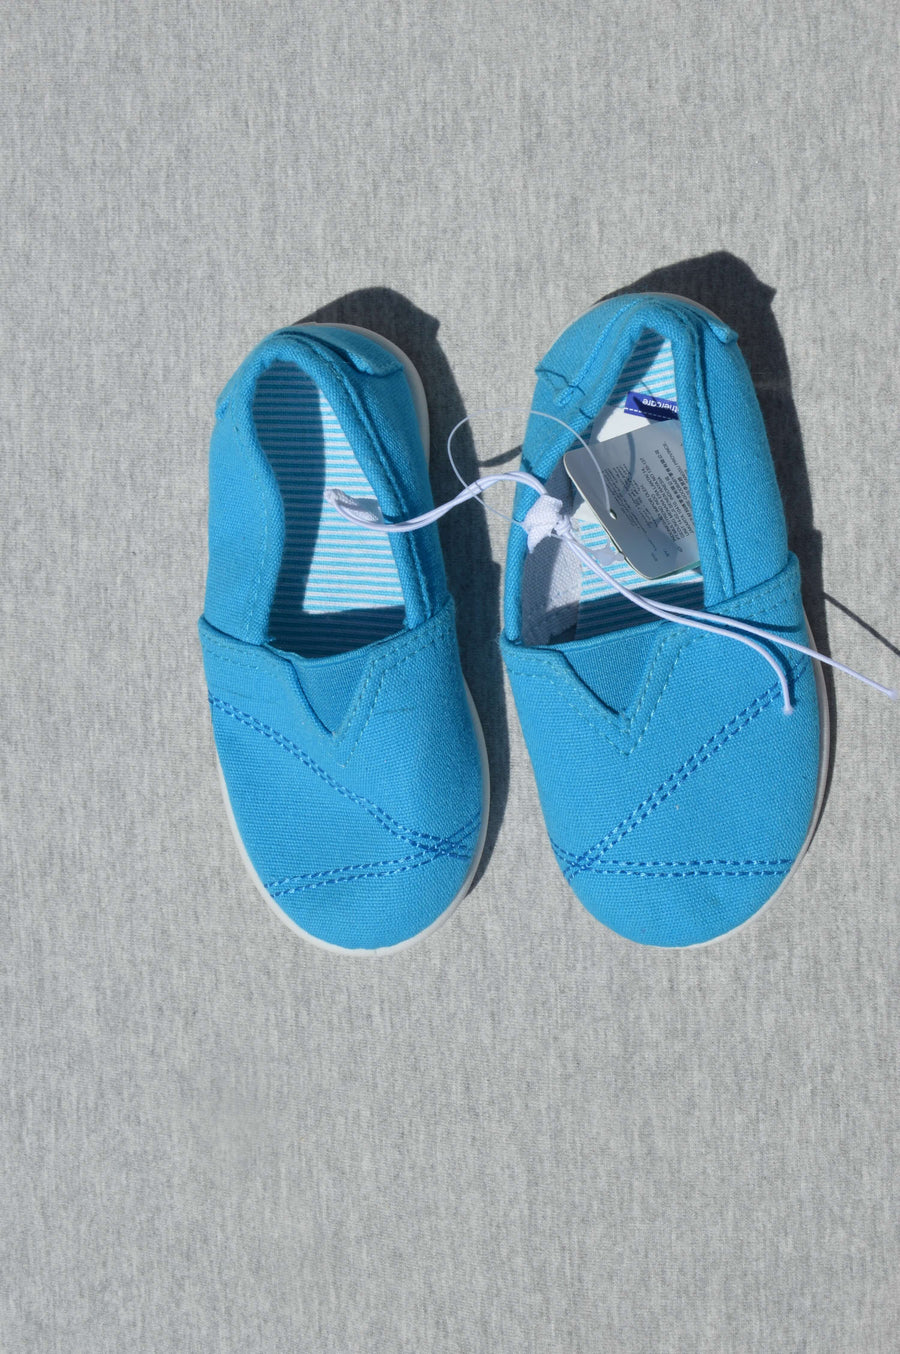 Mothercare - brand new - turquoise canvas plimsolls, size NZ 6